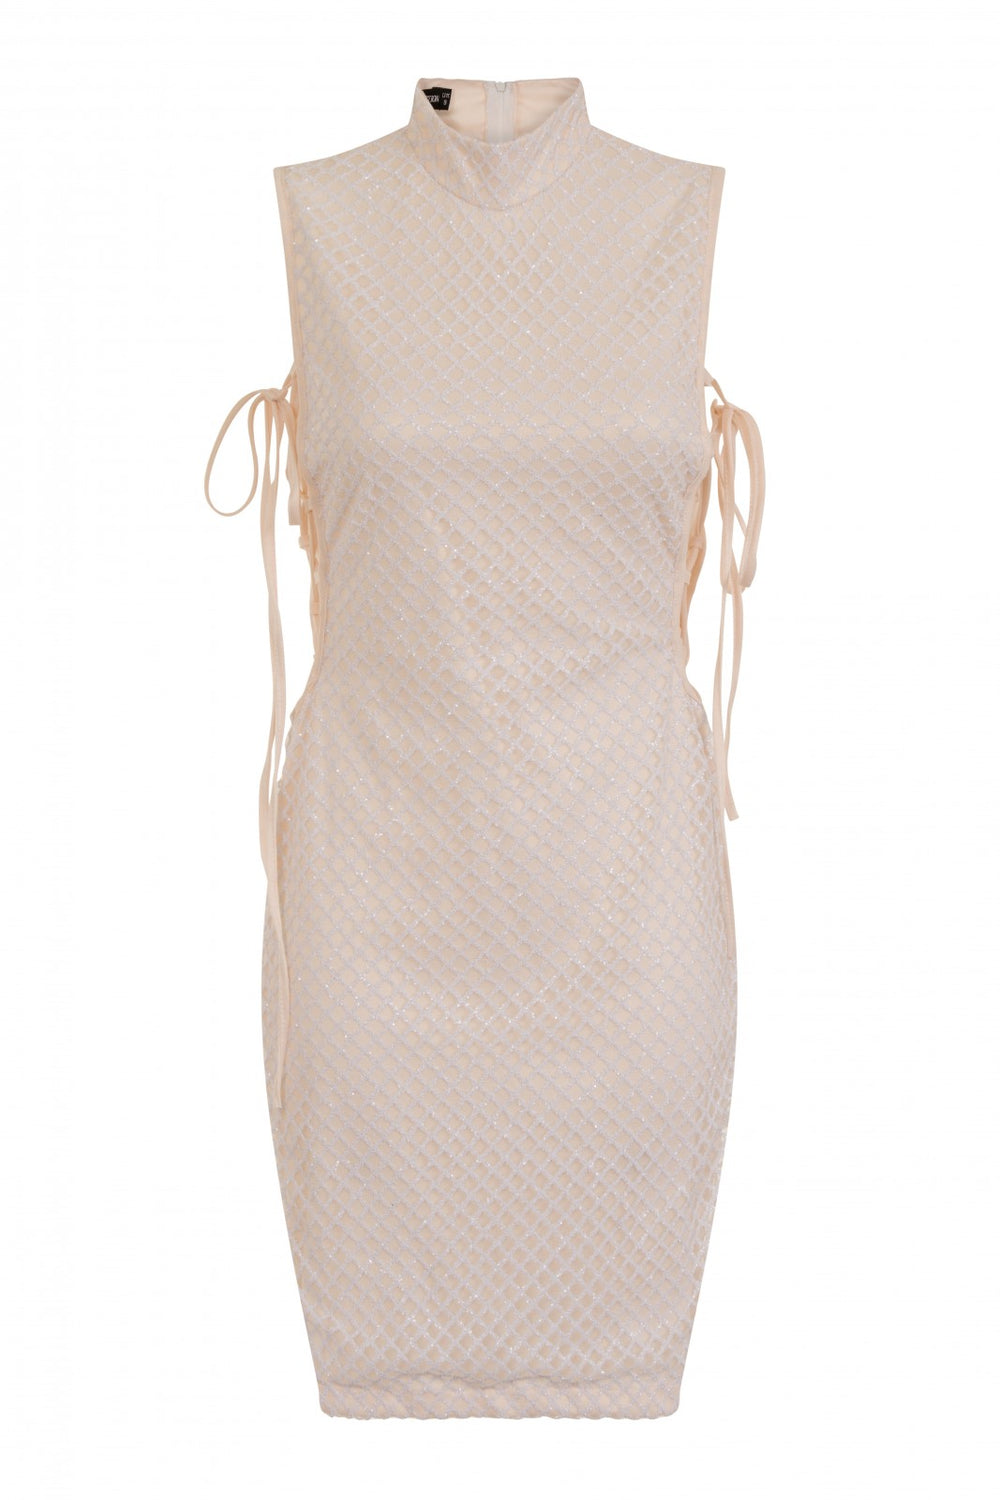 Rena White & Nude High Neck Tie Side Shimmer Sparkle Dress